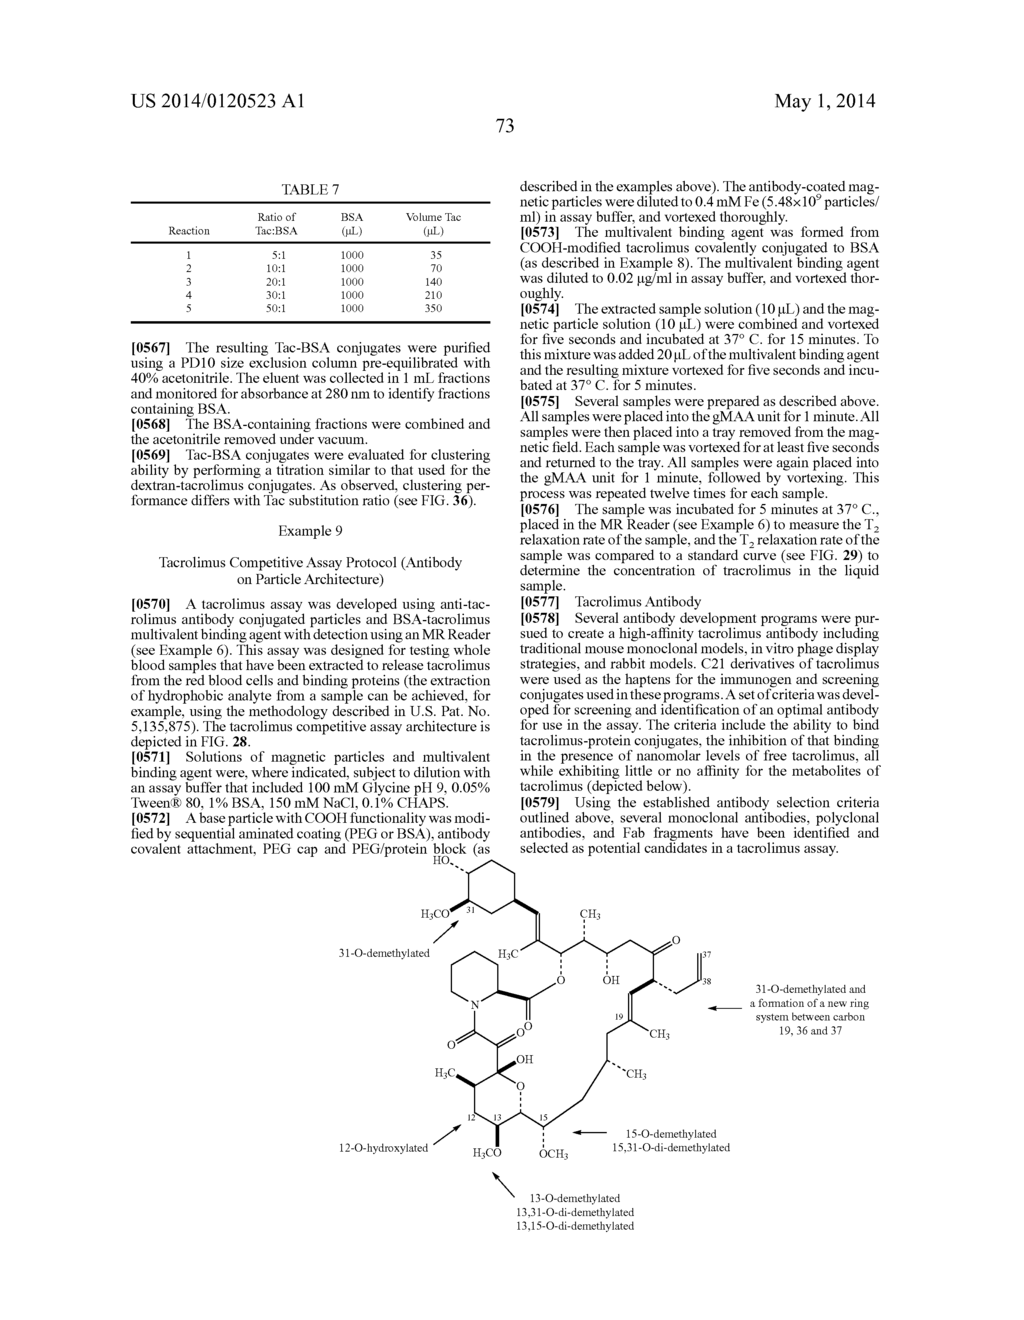 NMR SYSTEMS AND METHODS FOR THE RAPID DETECTION OF ANALYTES - diagram, schematic, and image 146